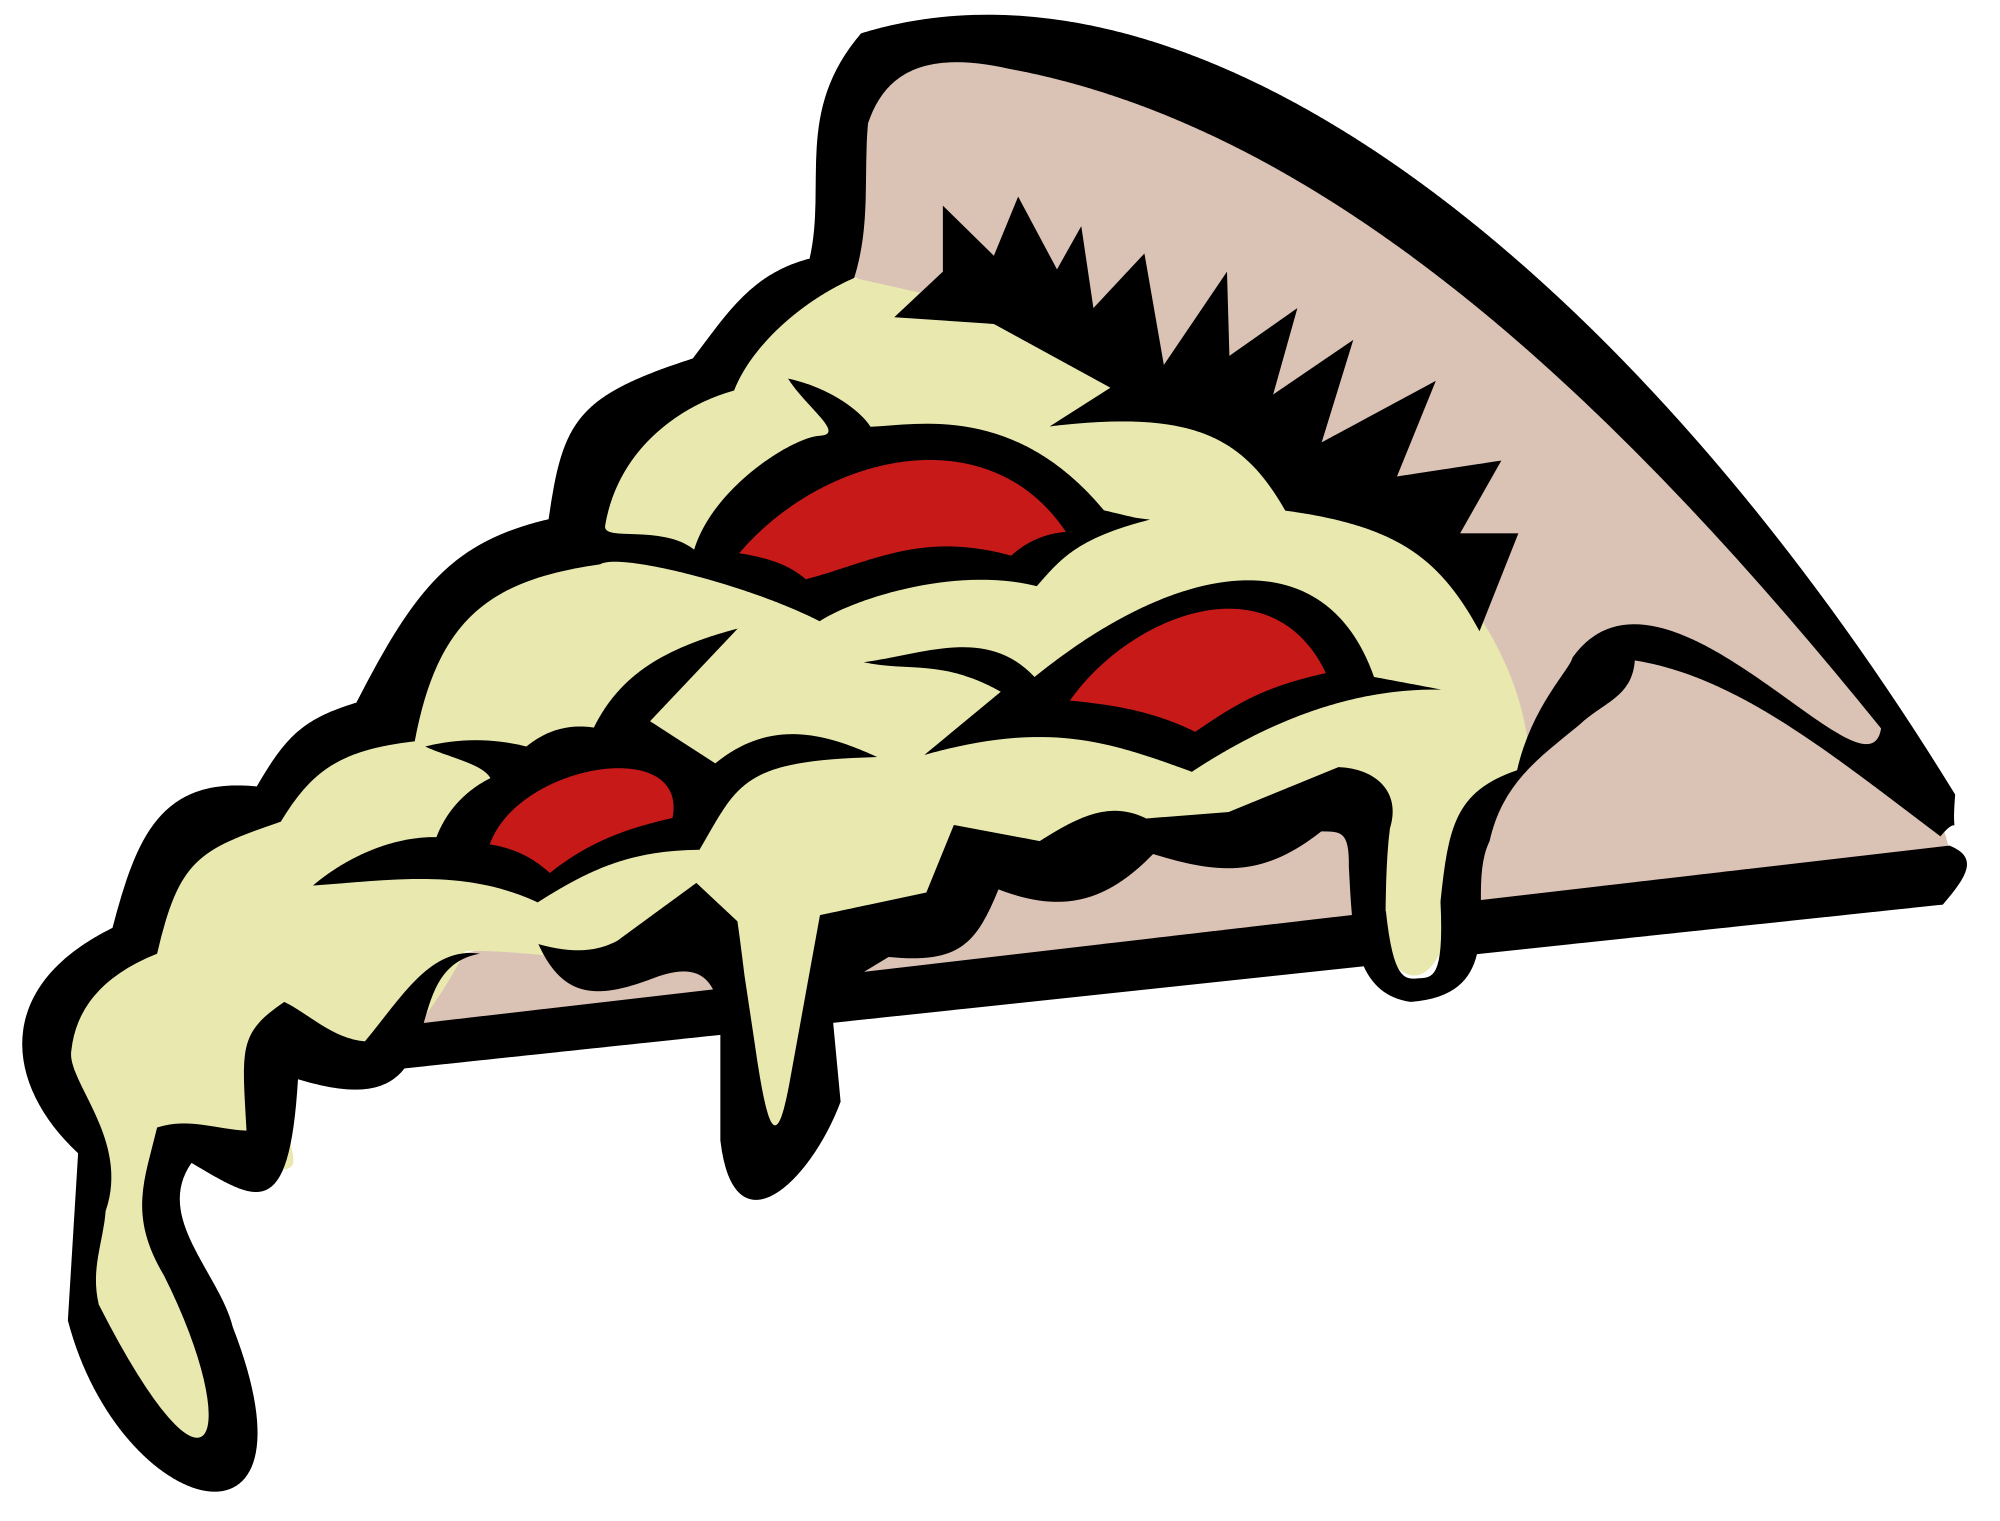 Pizza clipart file. Svg wikimedia commons open